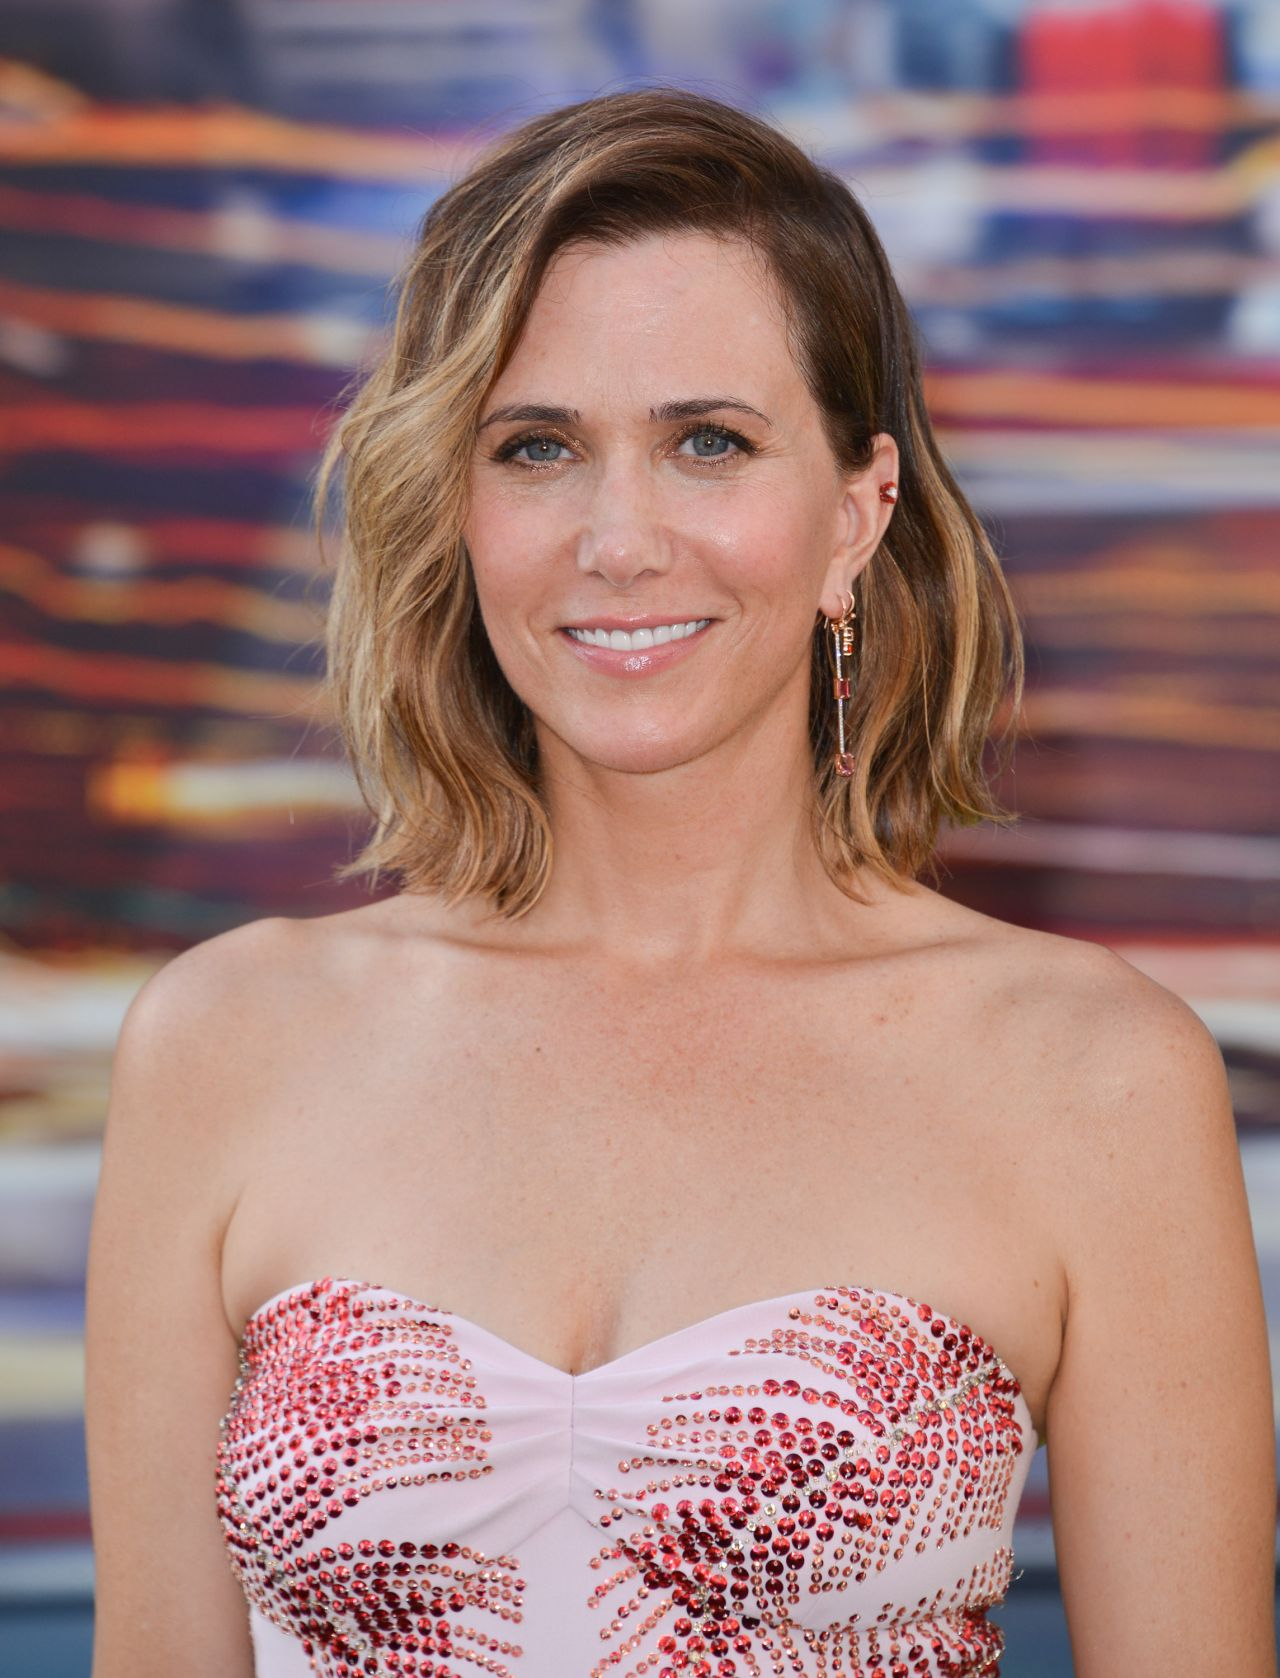 Kristen Wiig Sony Pictures Ghostbusters Premiere At